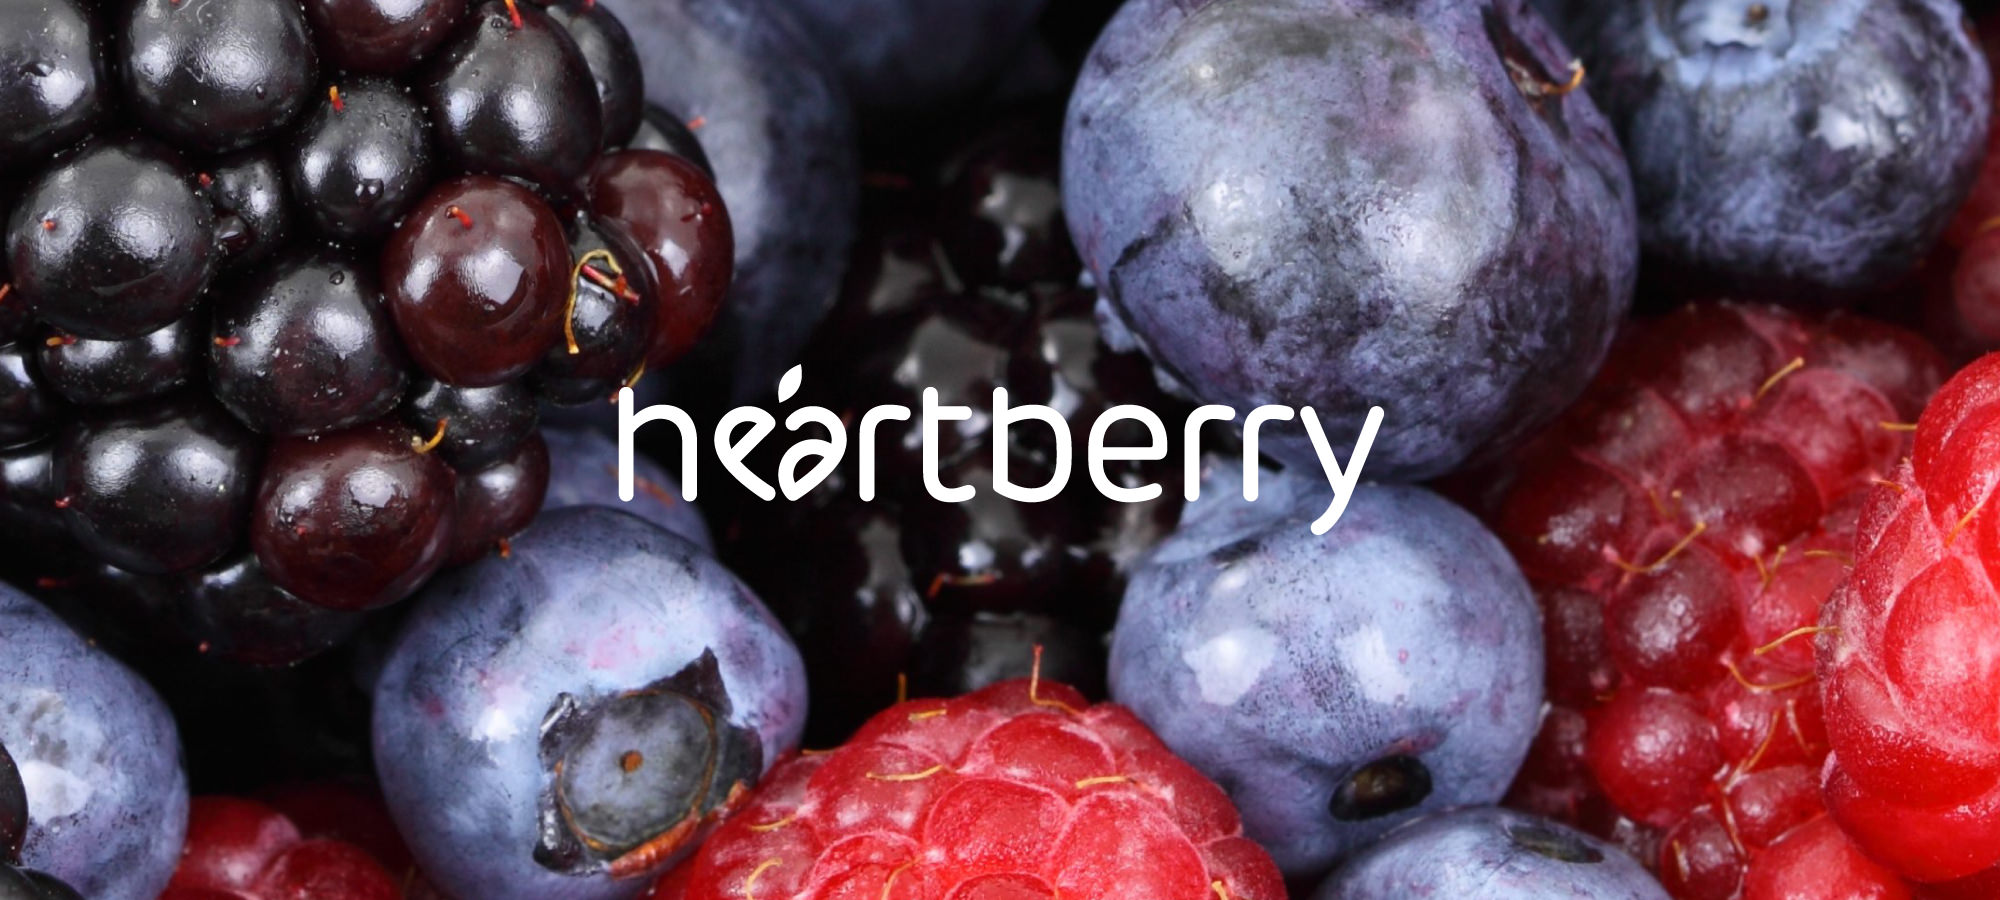 heartberry header-100